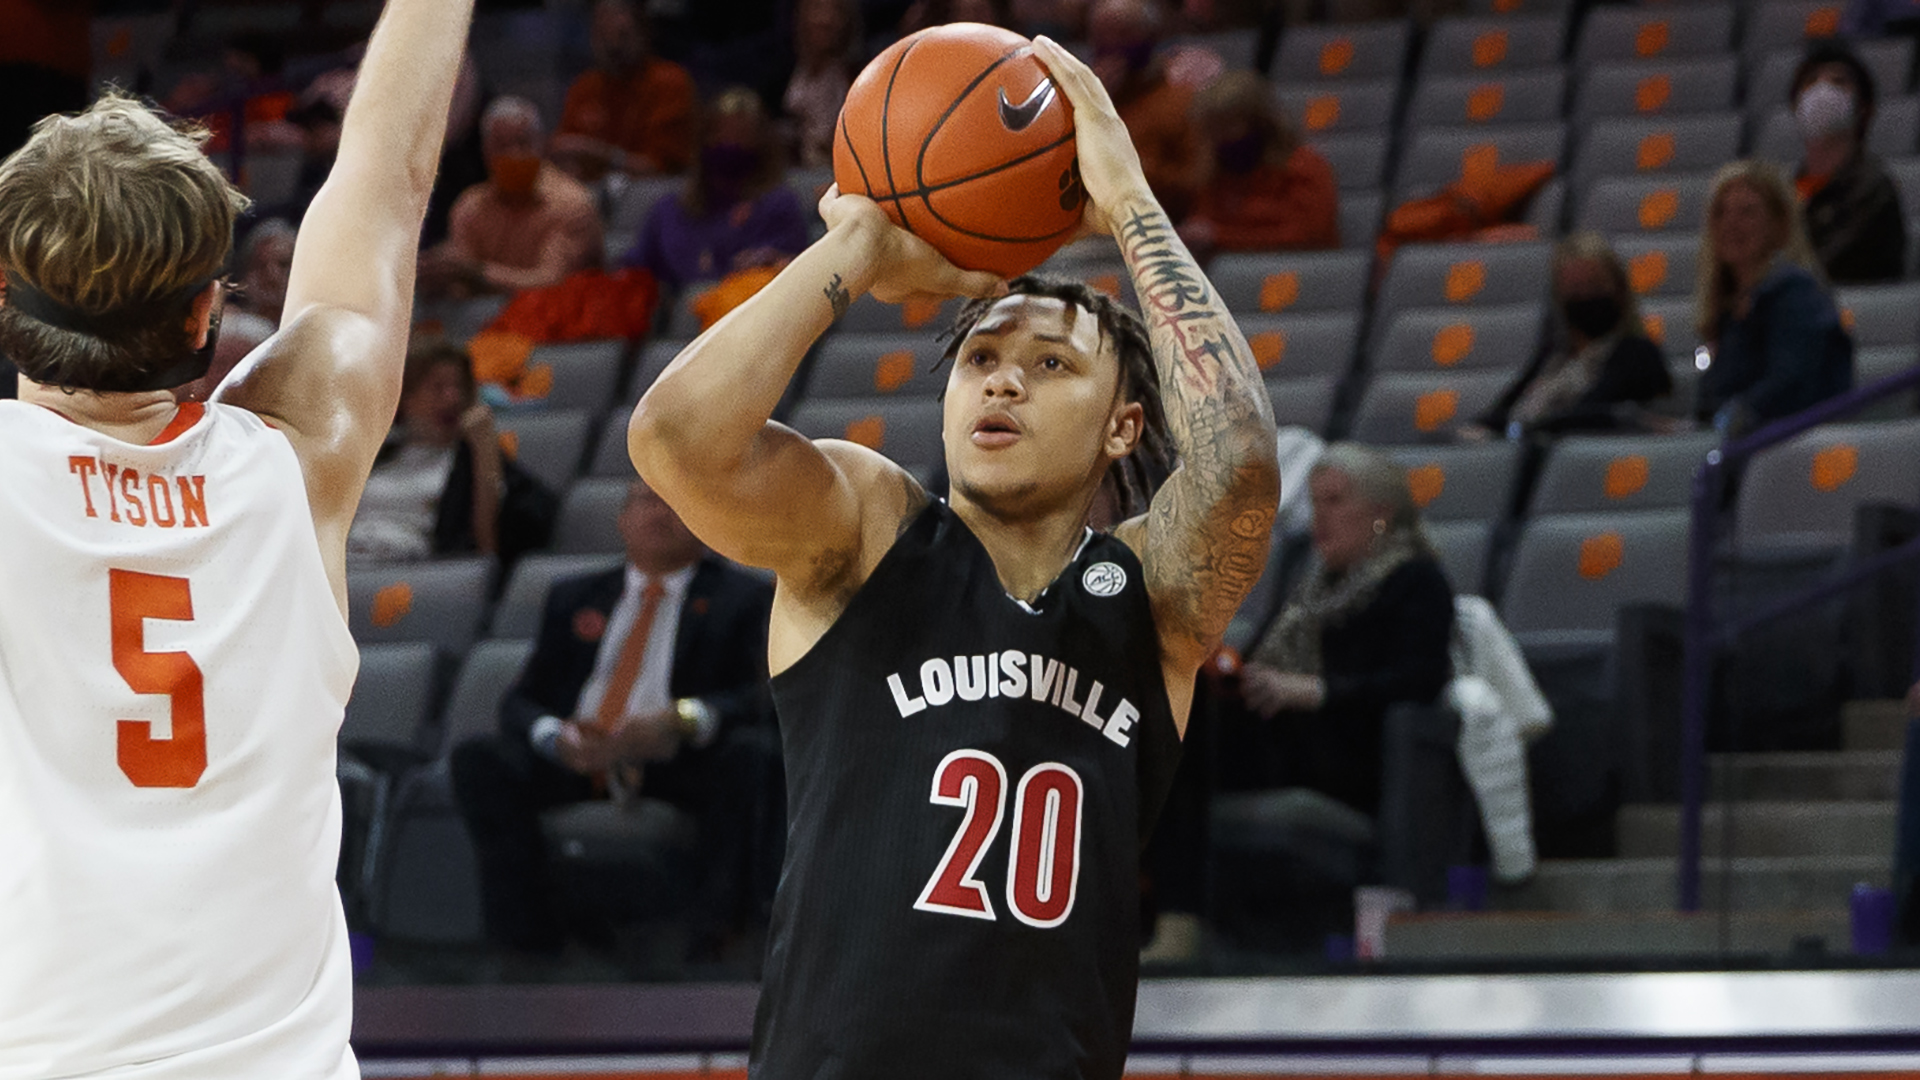 Louisville Guard Nickelberry Will Transfer from Cardinals